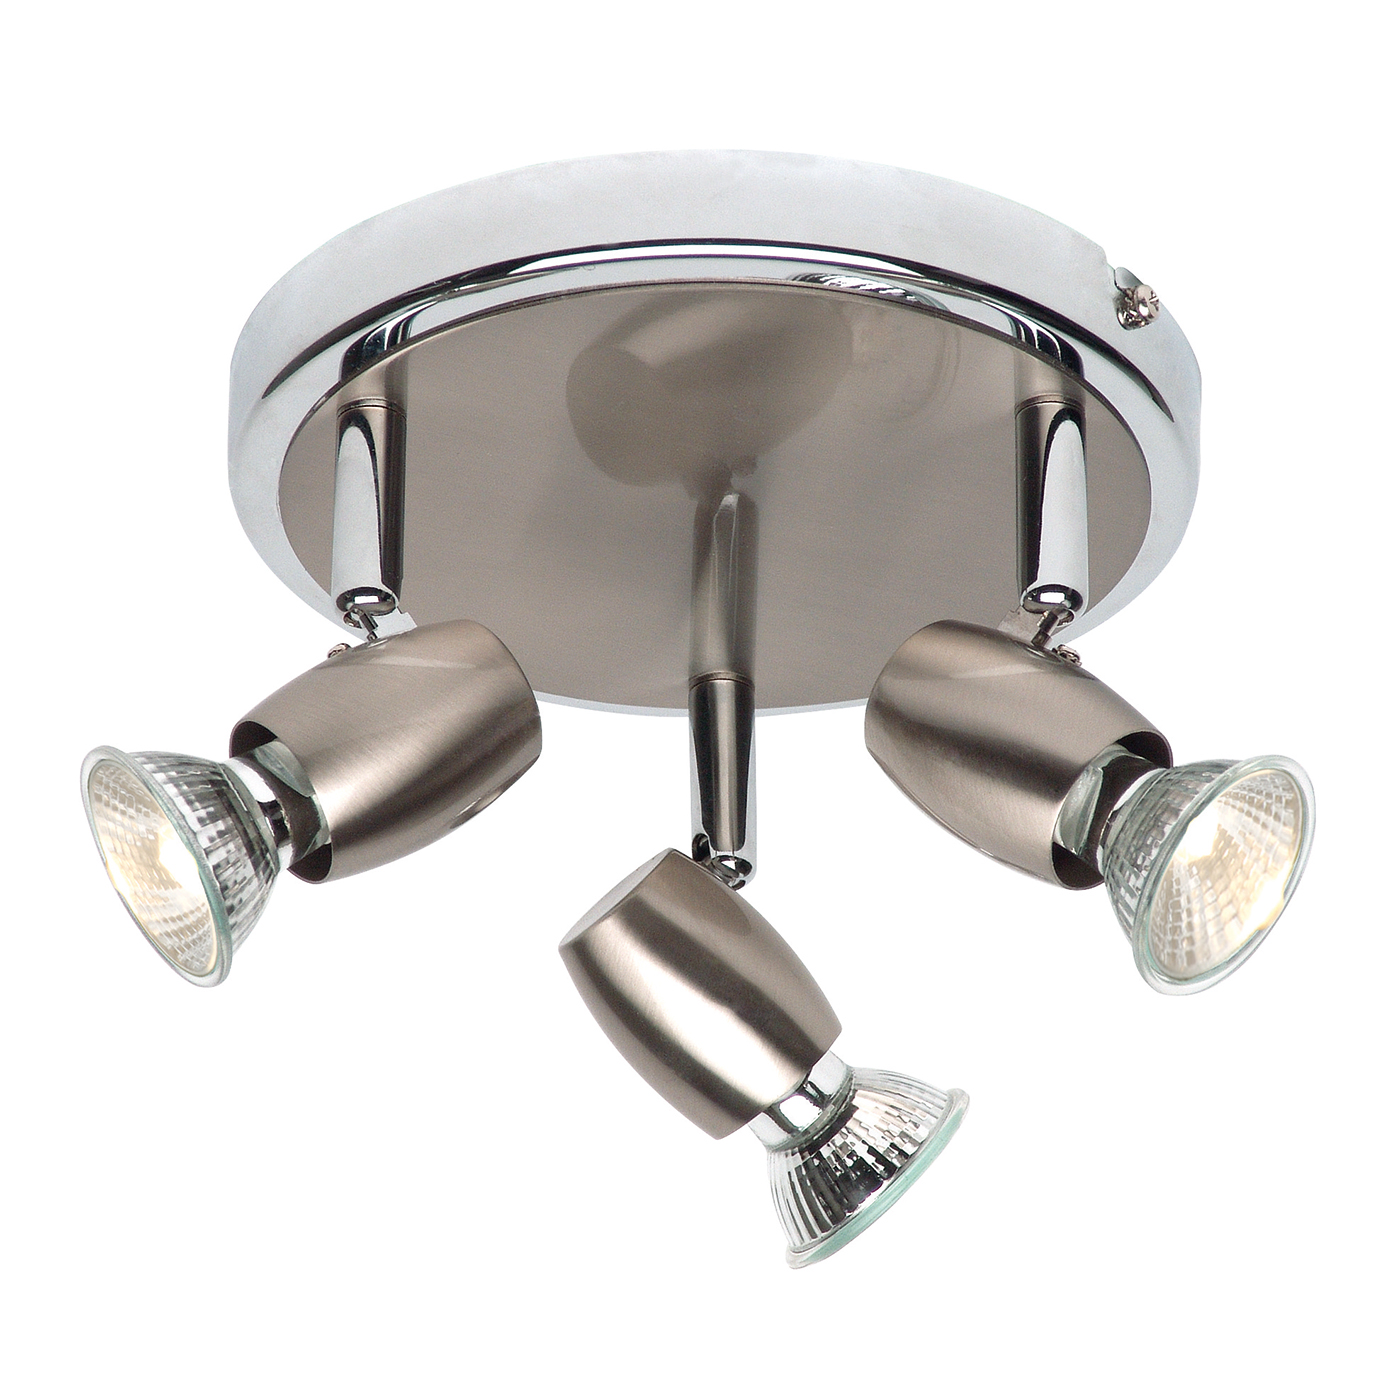 Endon Palermo ceiling spotlight round 3x 50W Brushed chrome effect Thumbnail 1